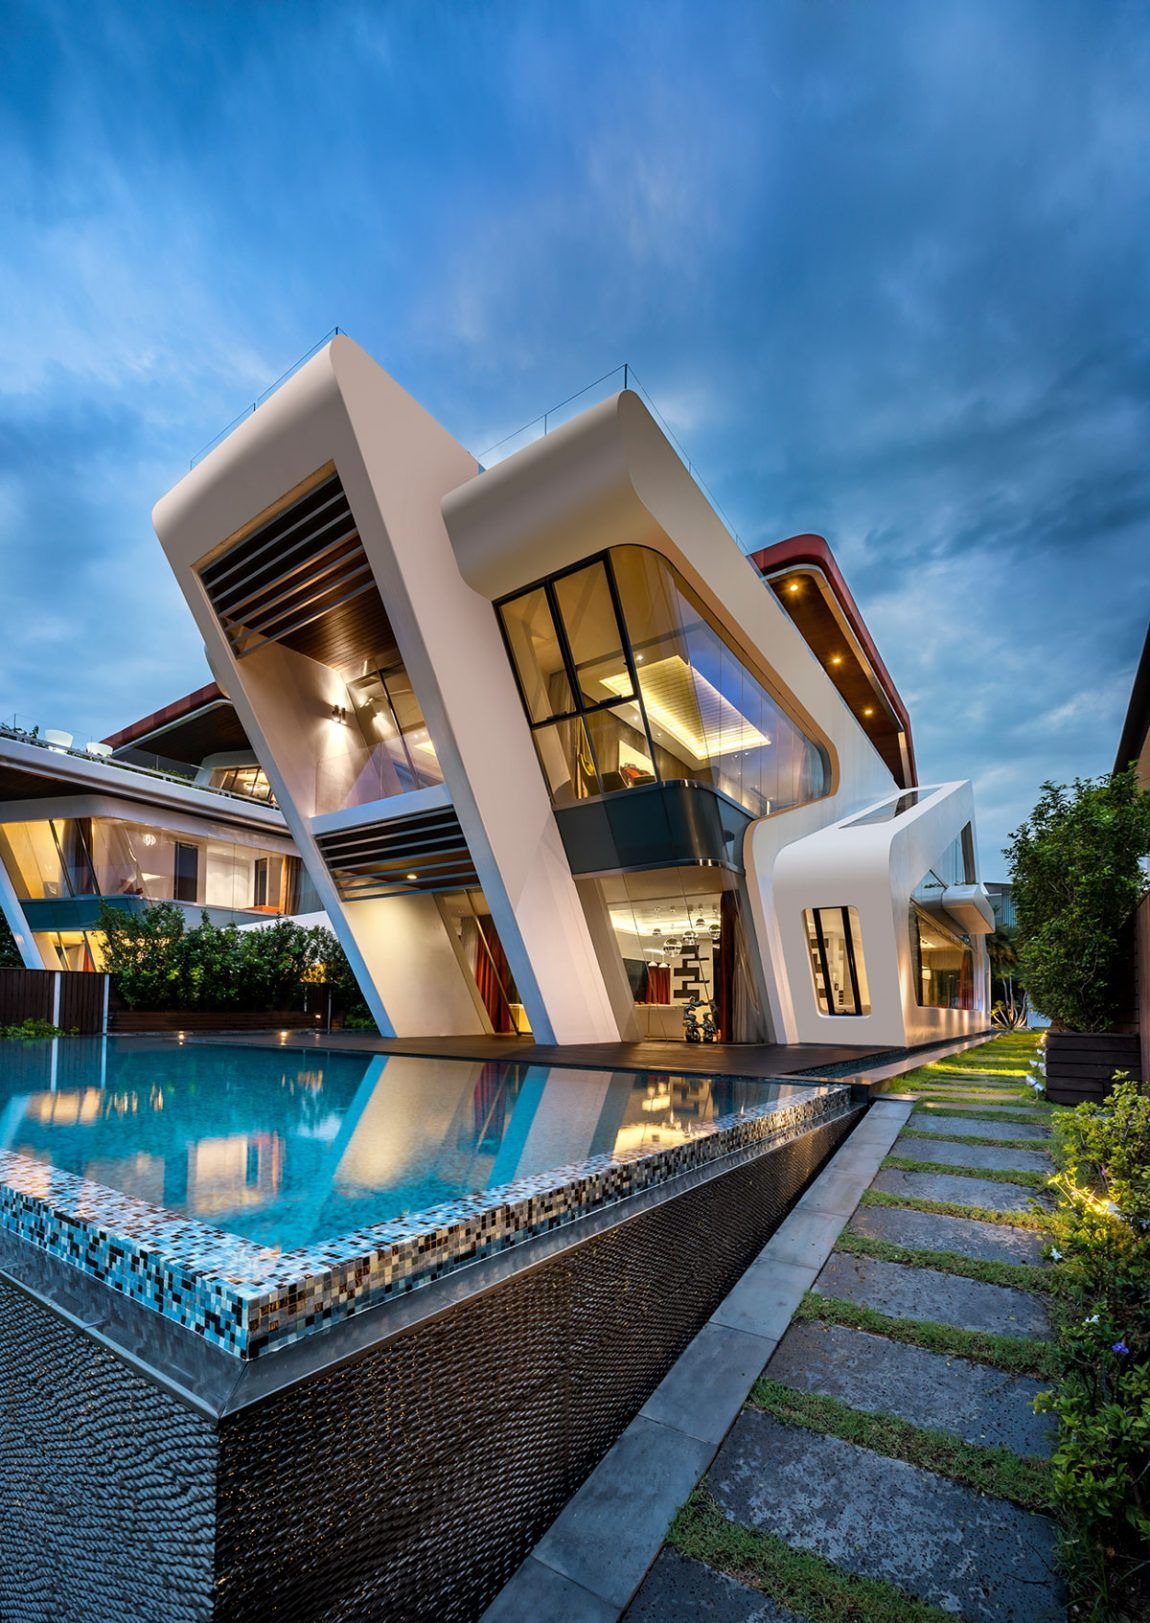 Pictures Of Villa Houses Best Of Pin by Jalen Callis On Houses